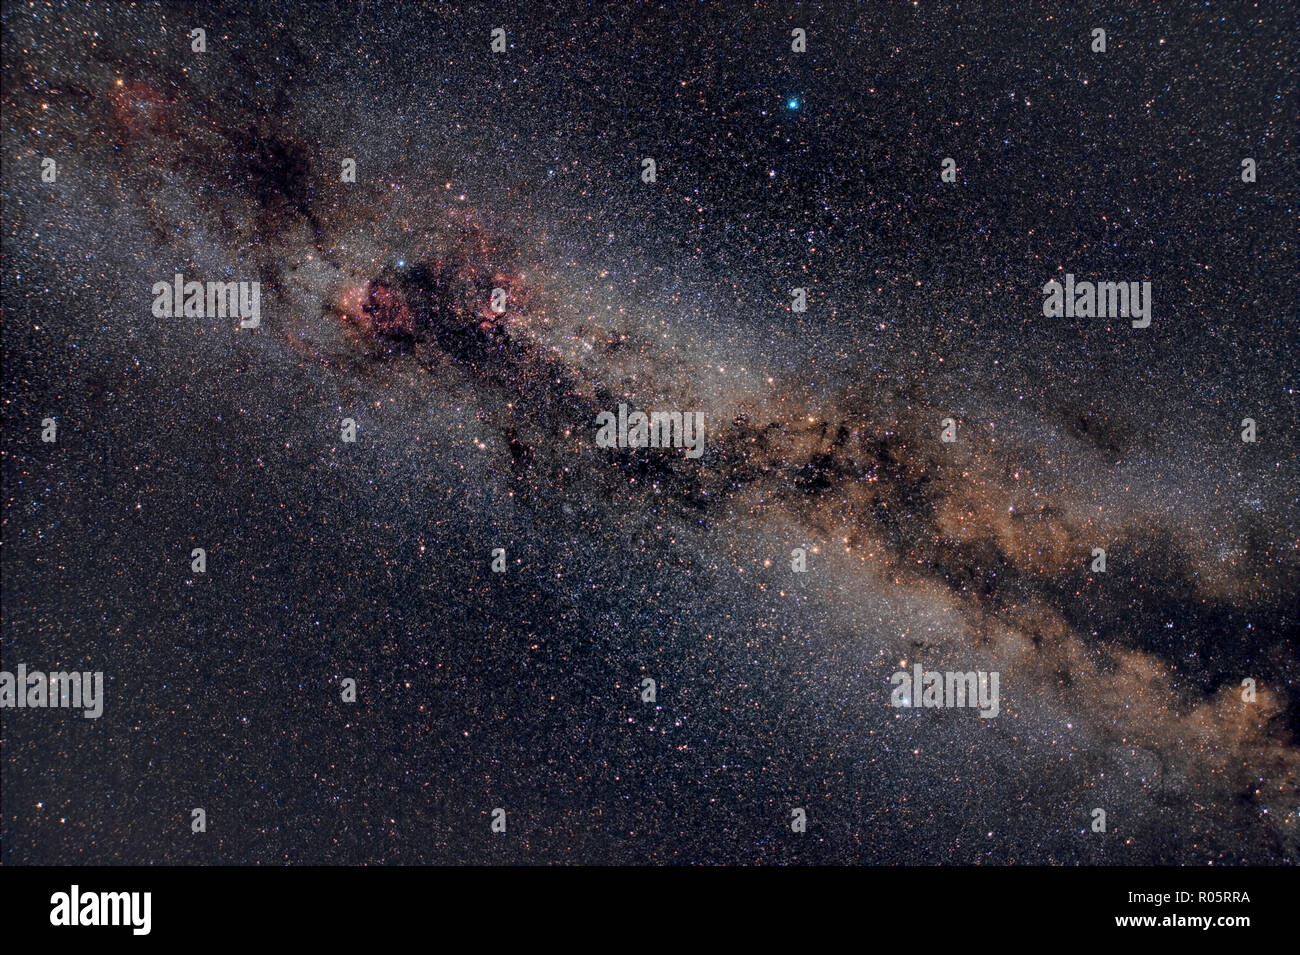 The Glorious Northern Milky Way Through the Area of the Summer Triangle - Stock Image